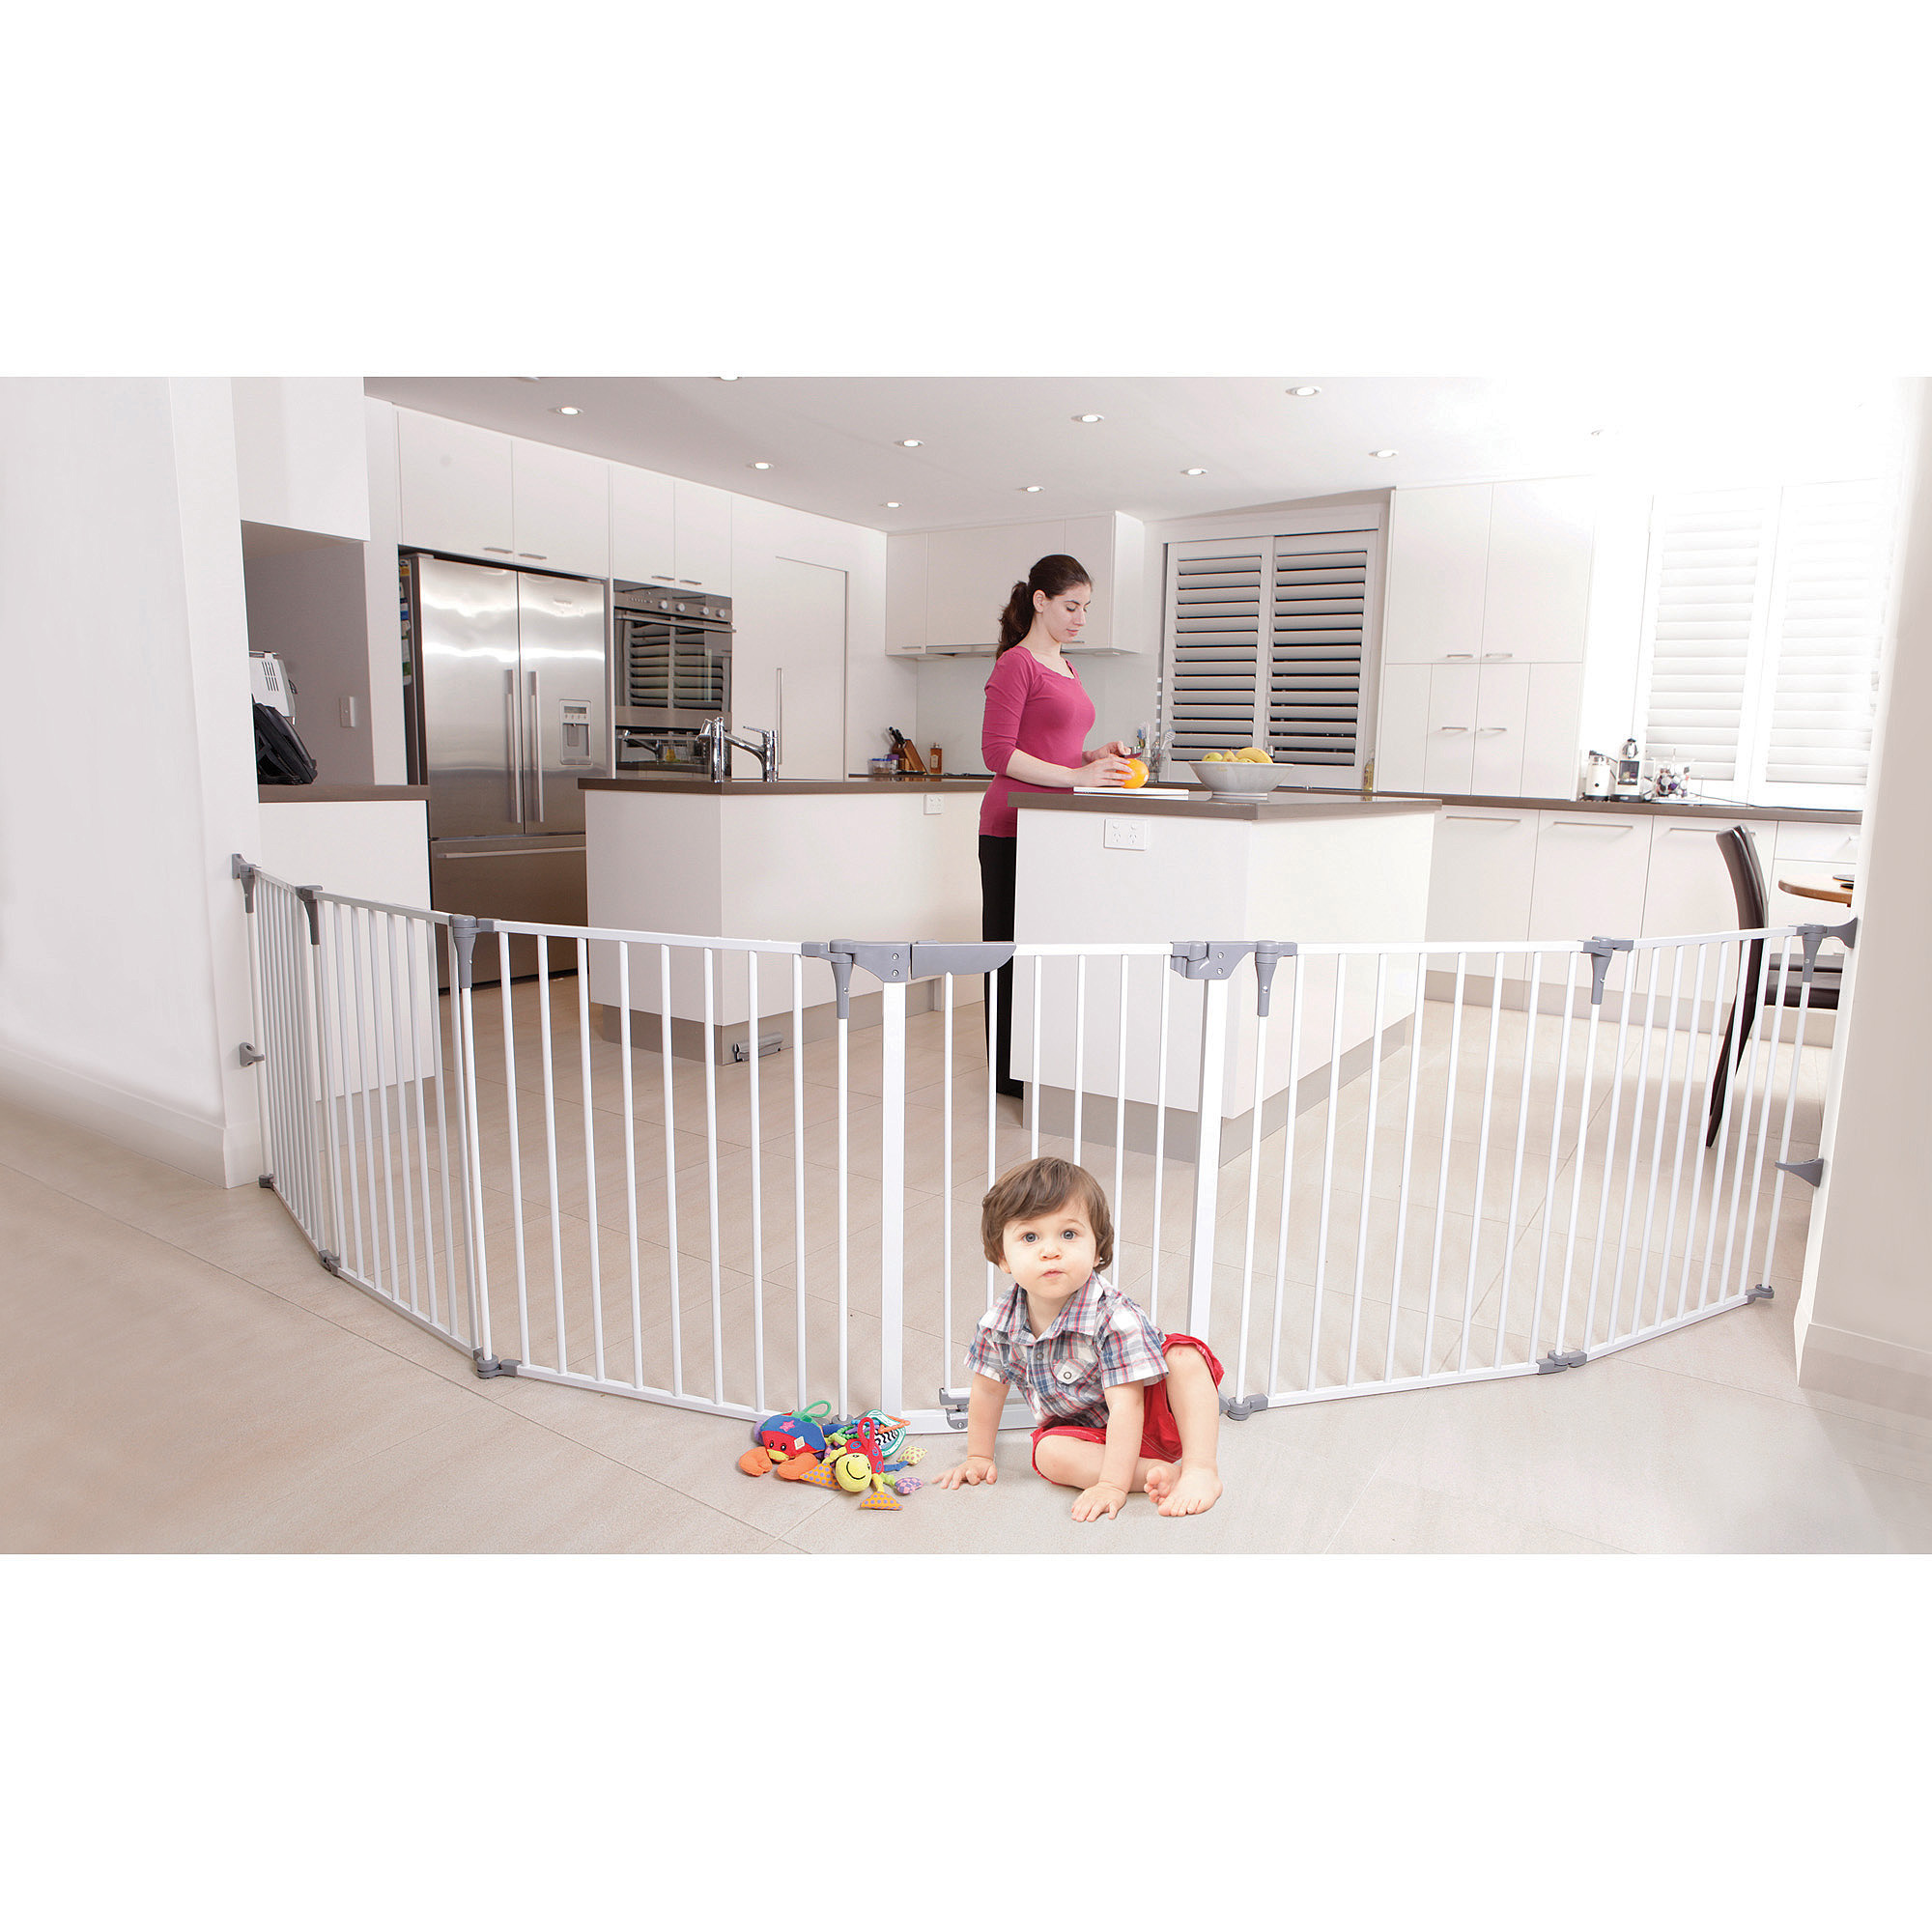 Dreambaby Royale Converta 3-in-1 Playard & Wide Barrier Gate